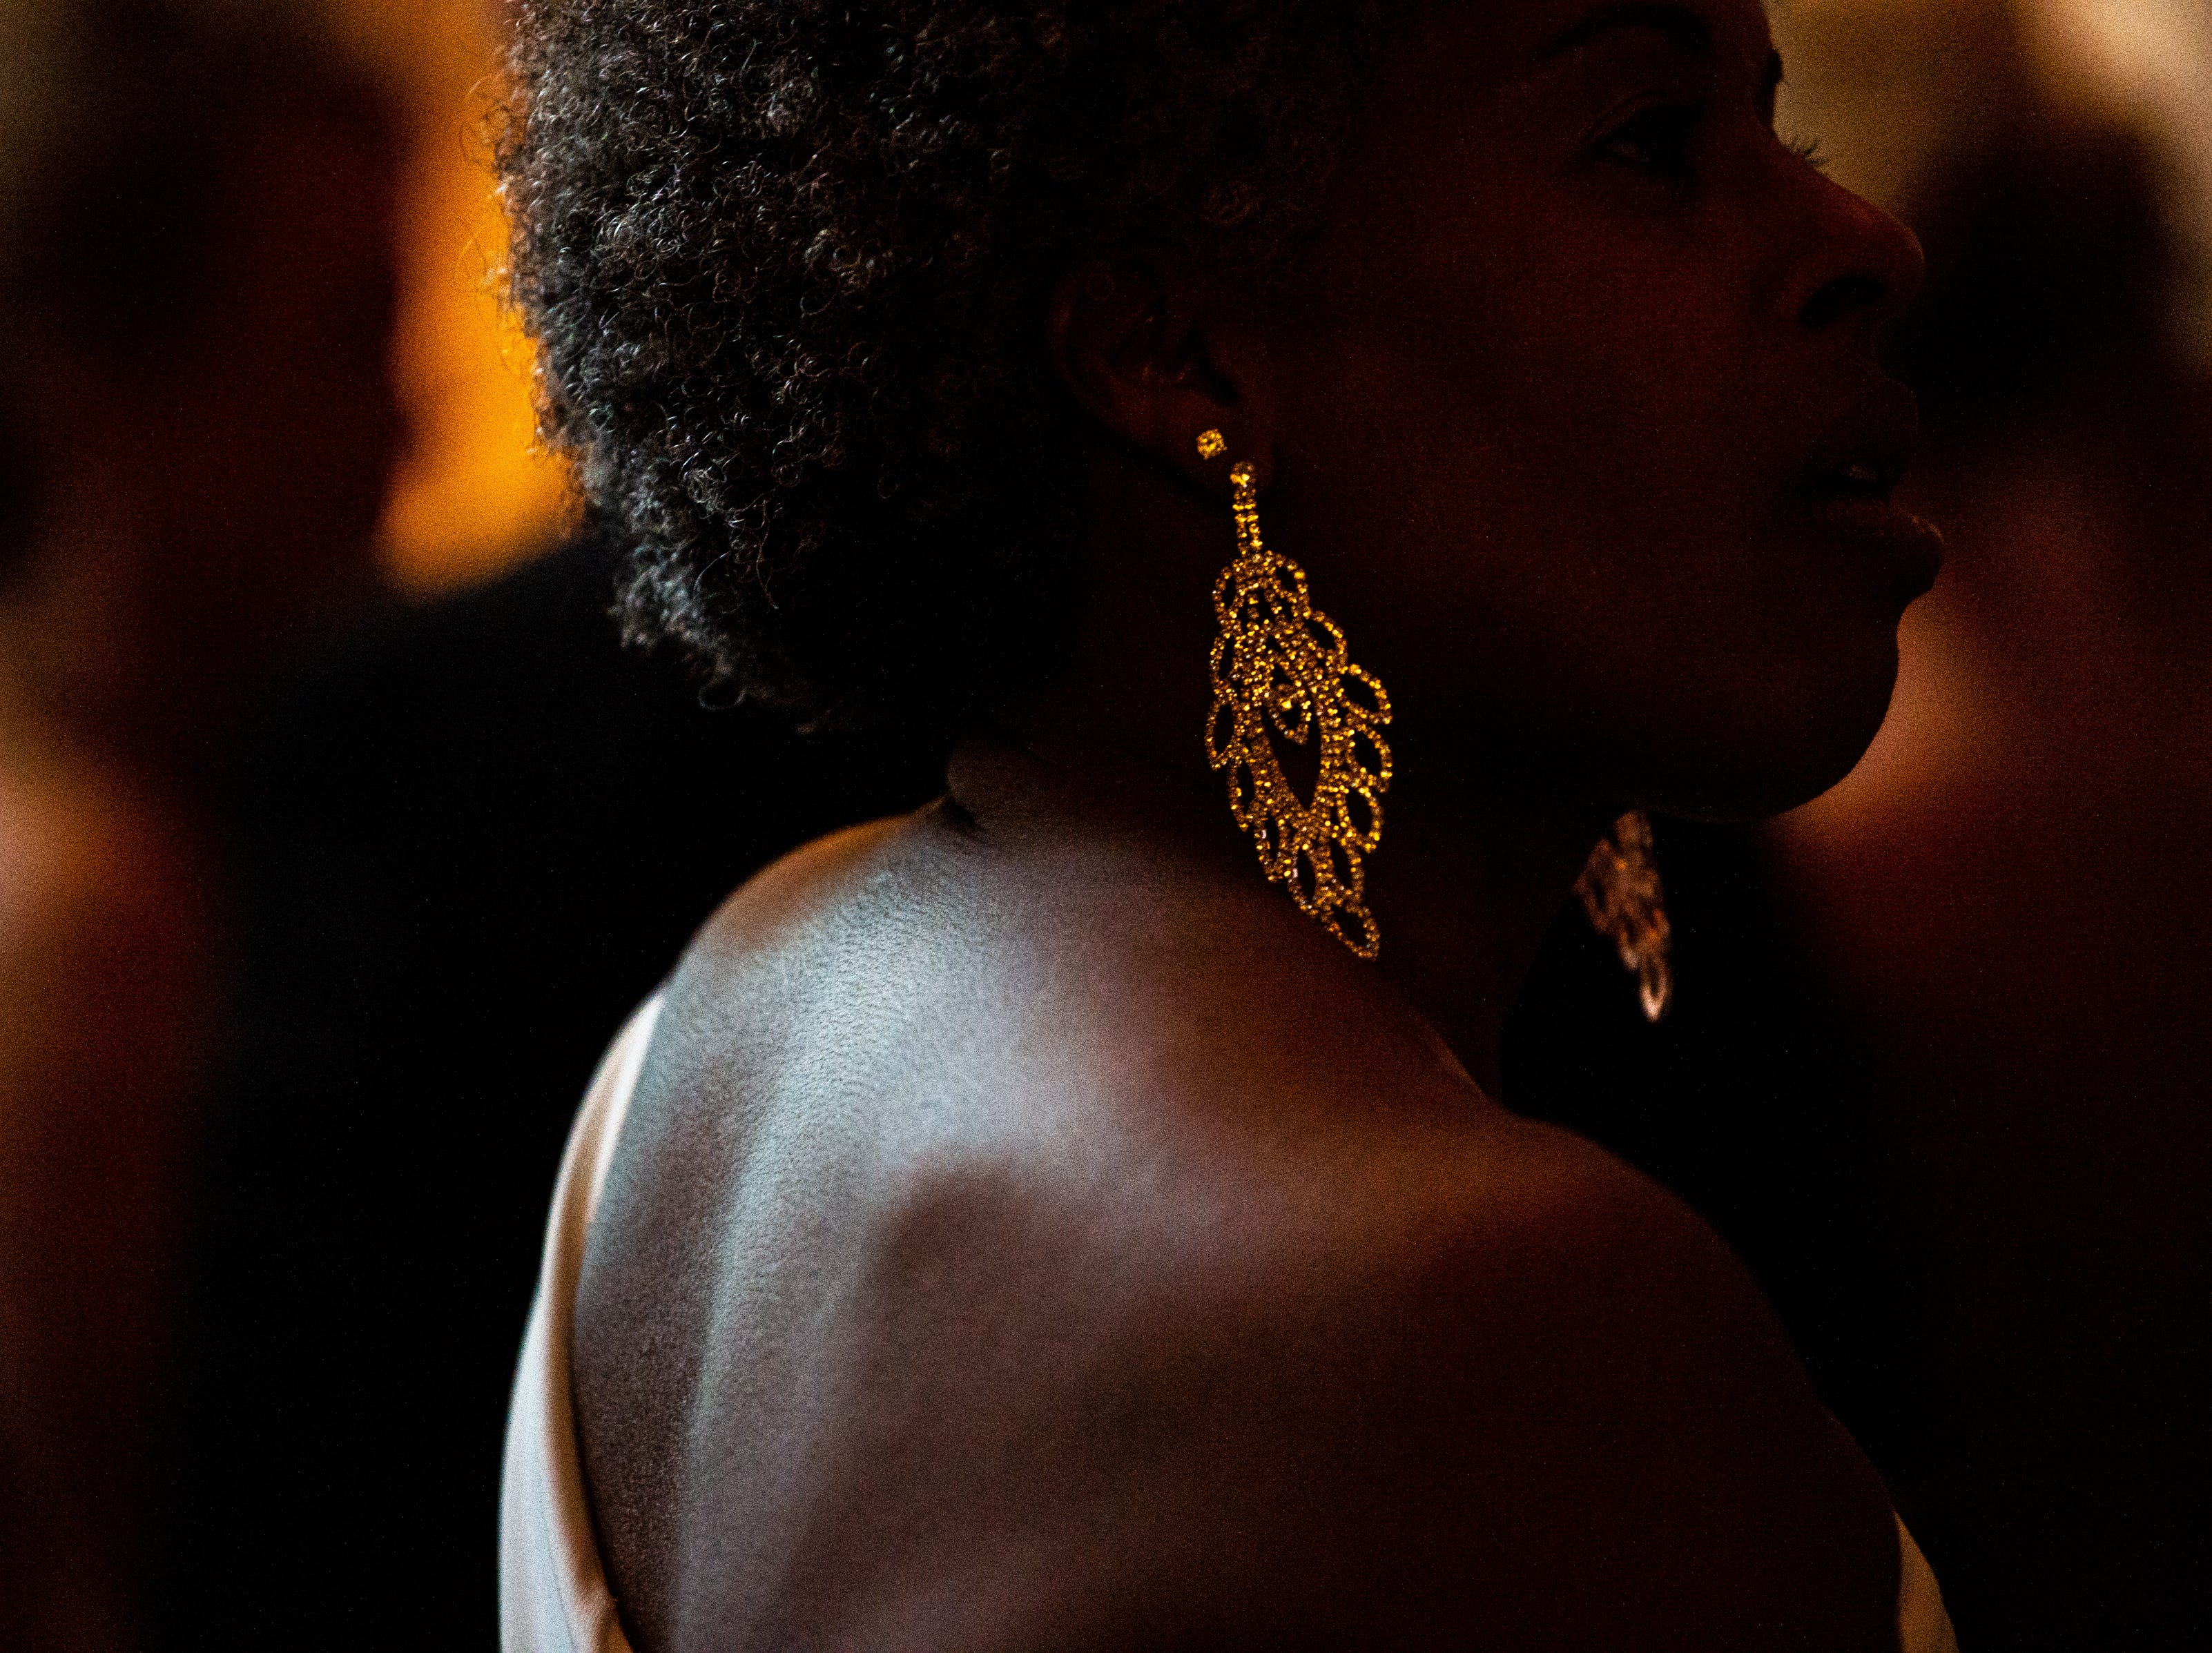 APSU alum and former employee Janet Wilson wears statement earrings during Austin Peay State University's annual Candlelight Ball at the Omni Nashville Hotel Saturday, March 16, 2019, in Nashville, Tenn.